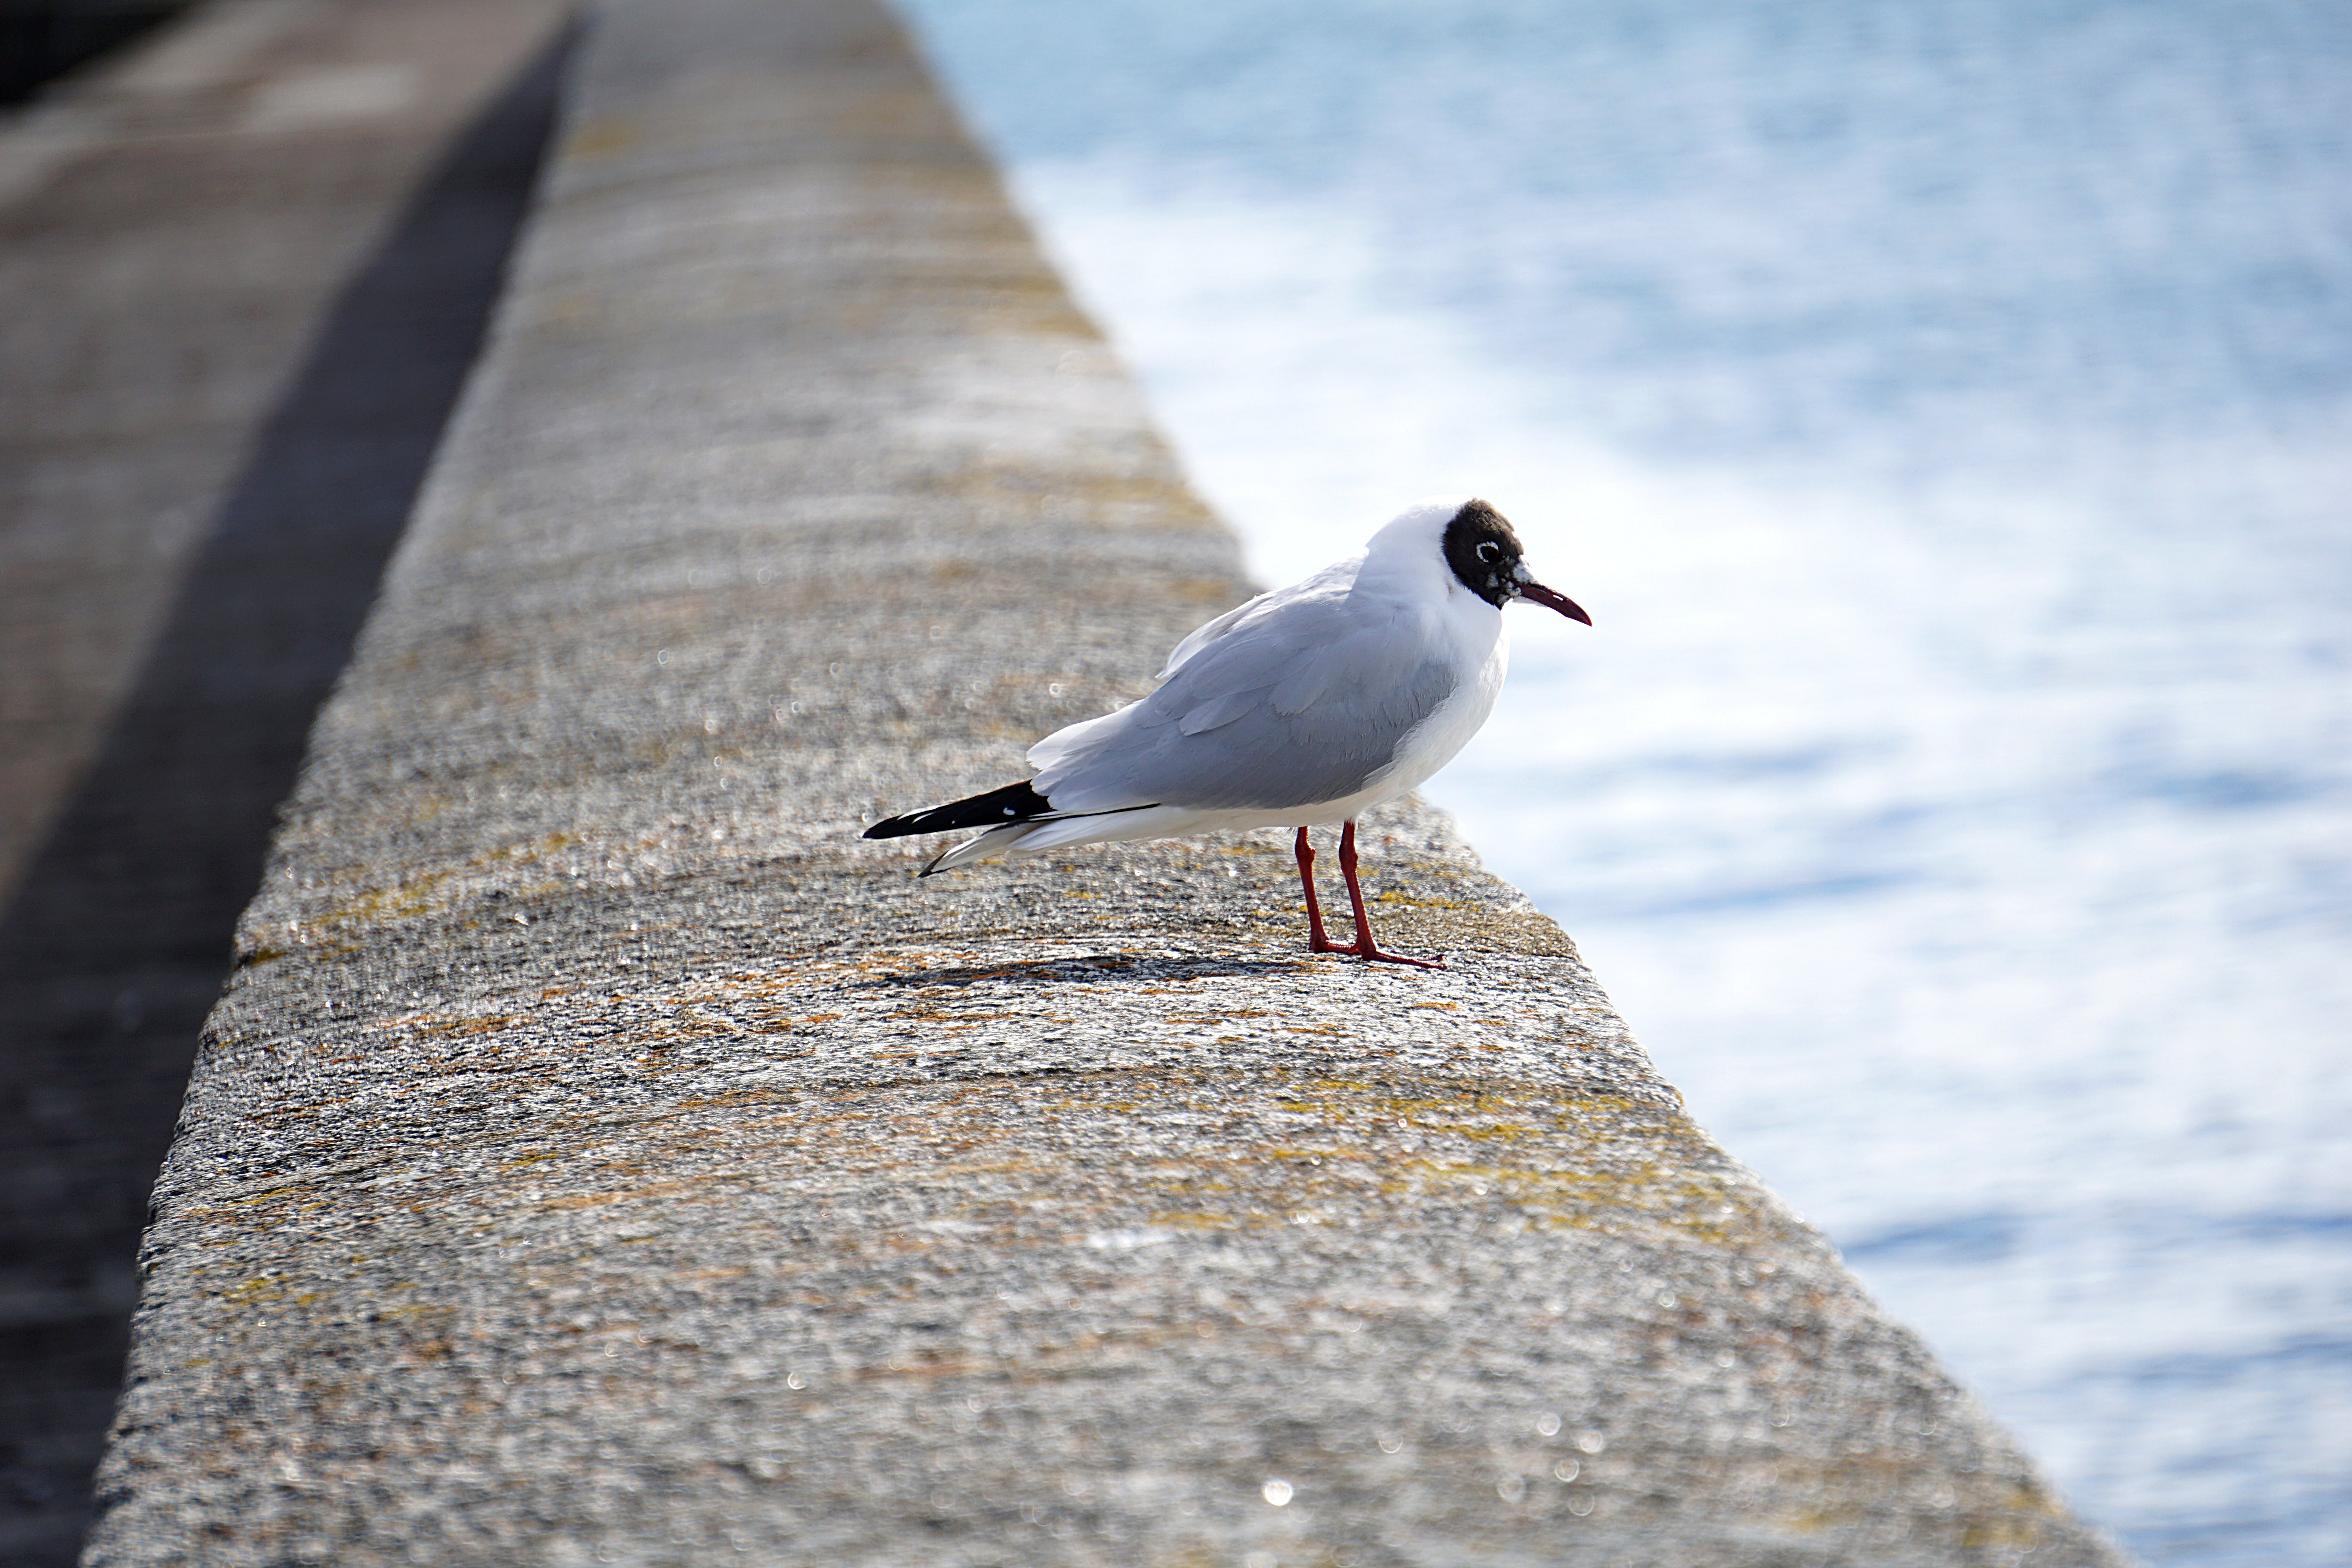 White Gray and Black Bird on Gray Concrete Beside Blue Body of Water during Daytime